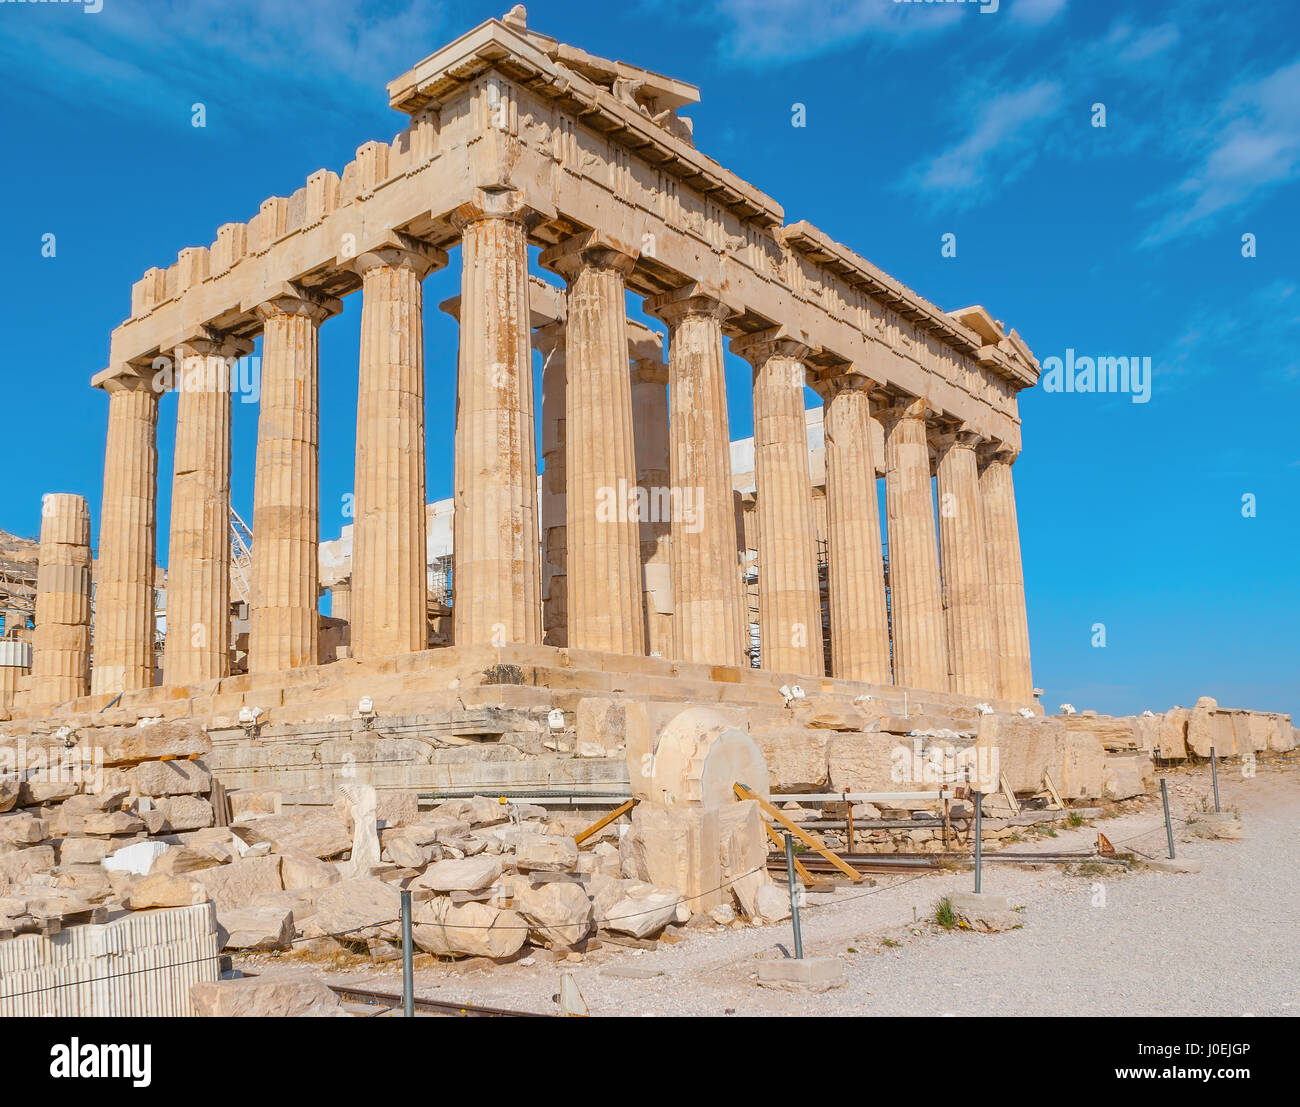 Parthenon Is The Pearl Of Ancient Greece Architecture And Is The